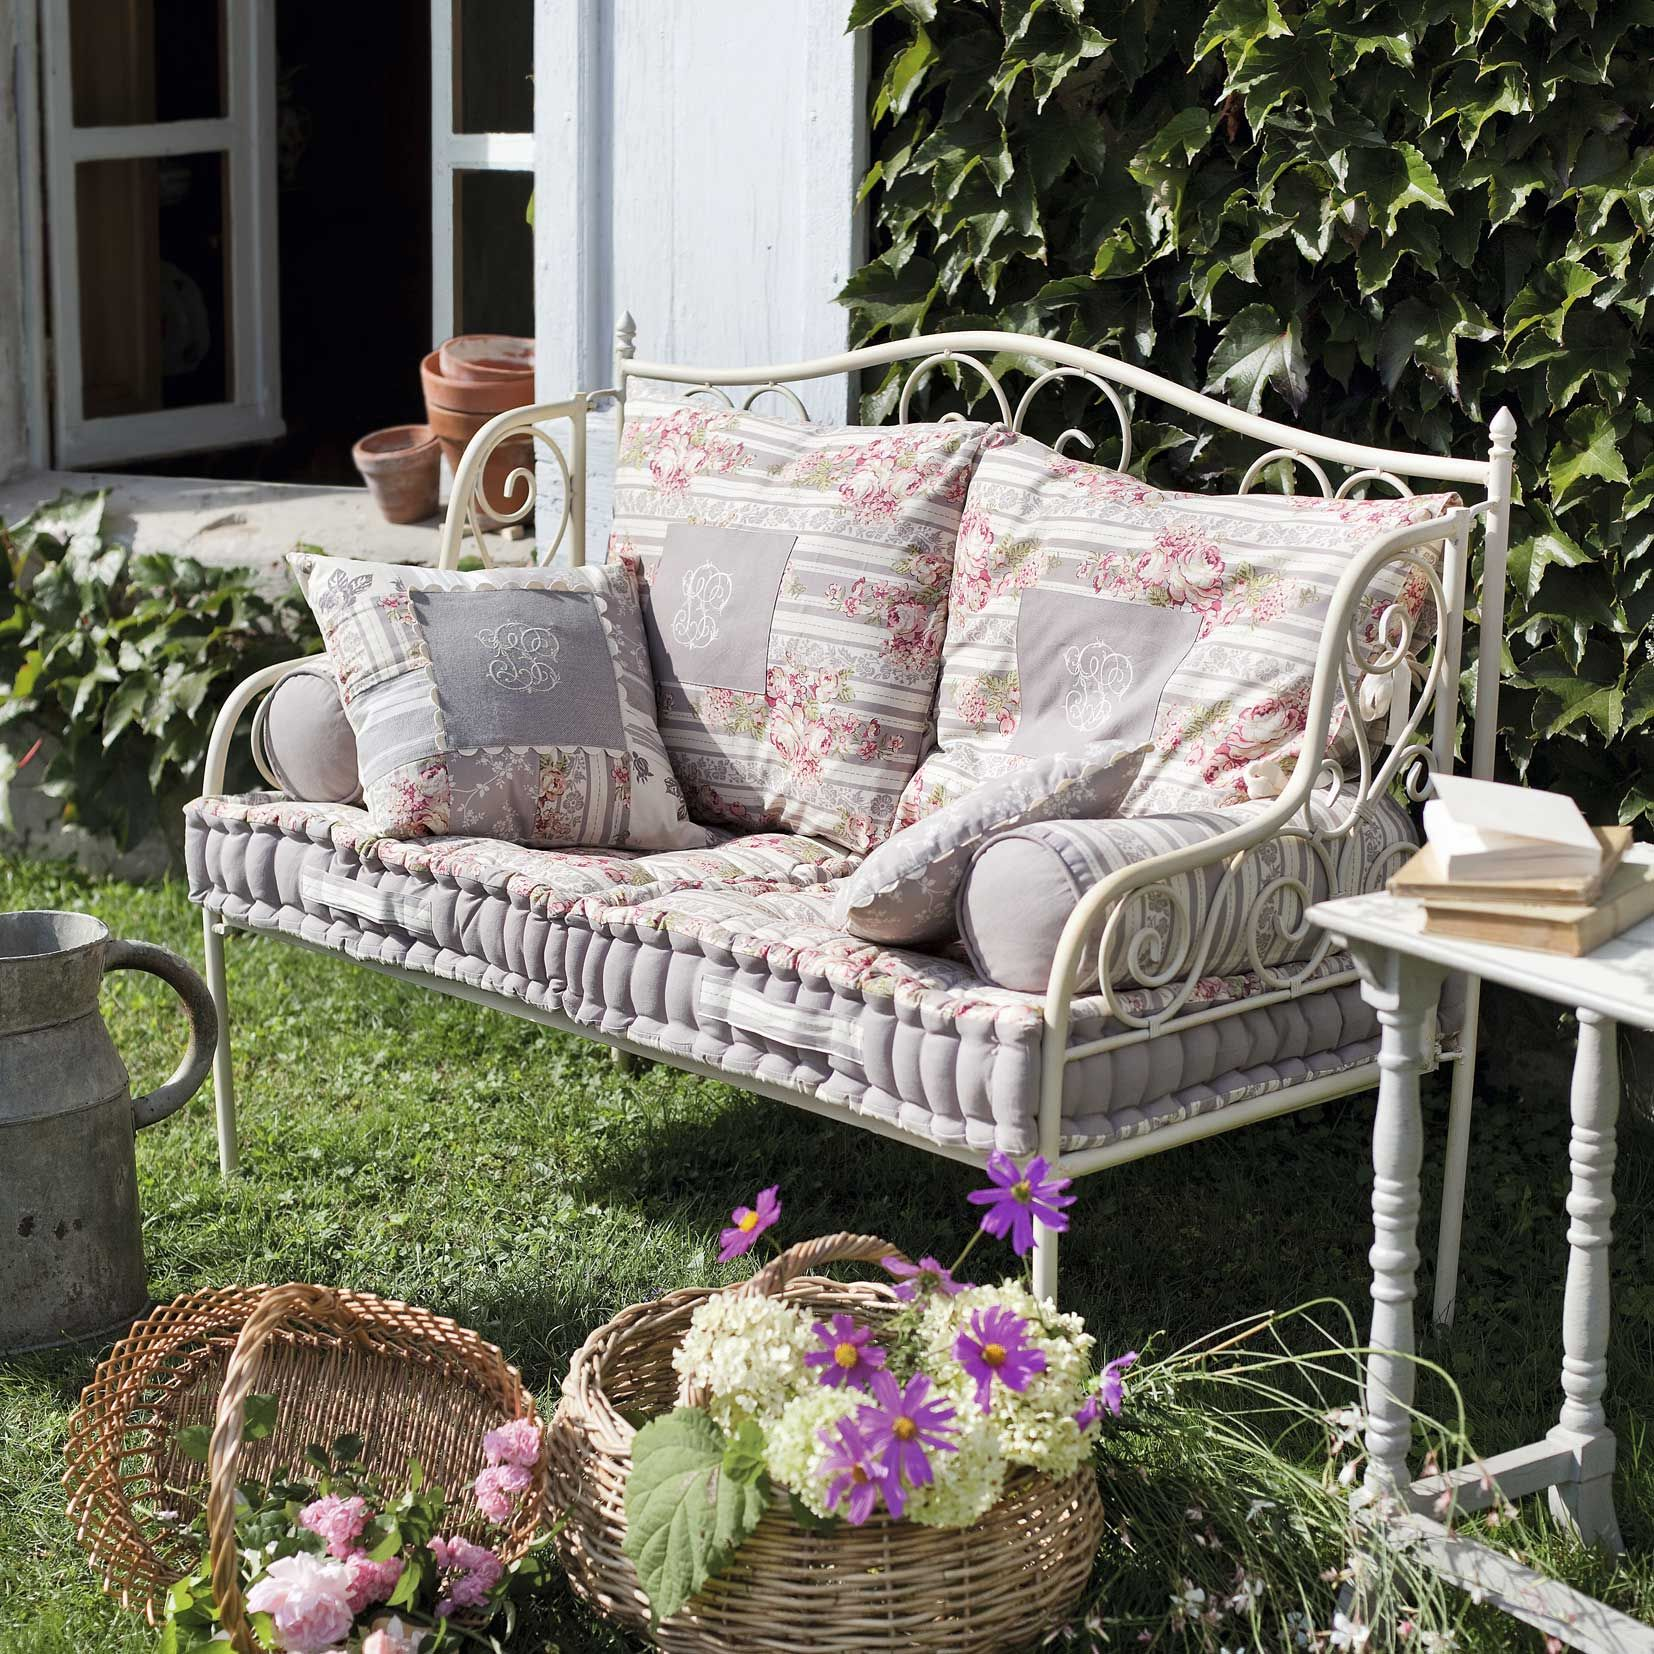 Salon De Jardin Romantique Blanc Romantique On Pinterest Toile De Jouy Rose And Metals